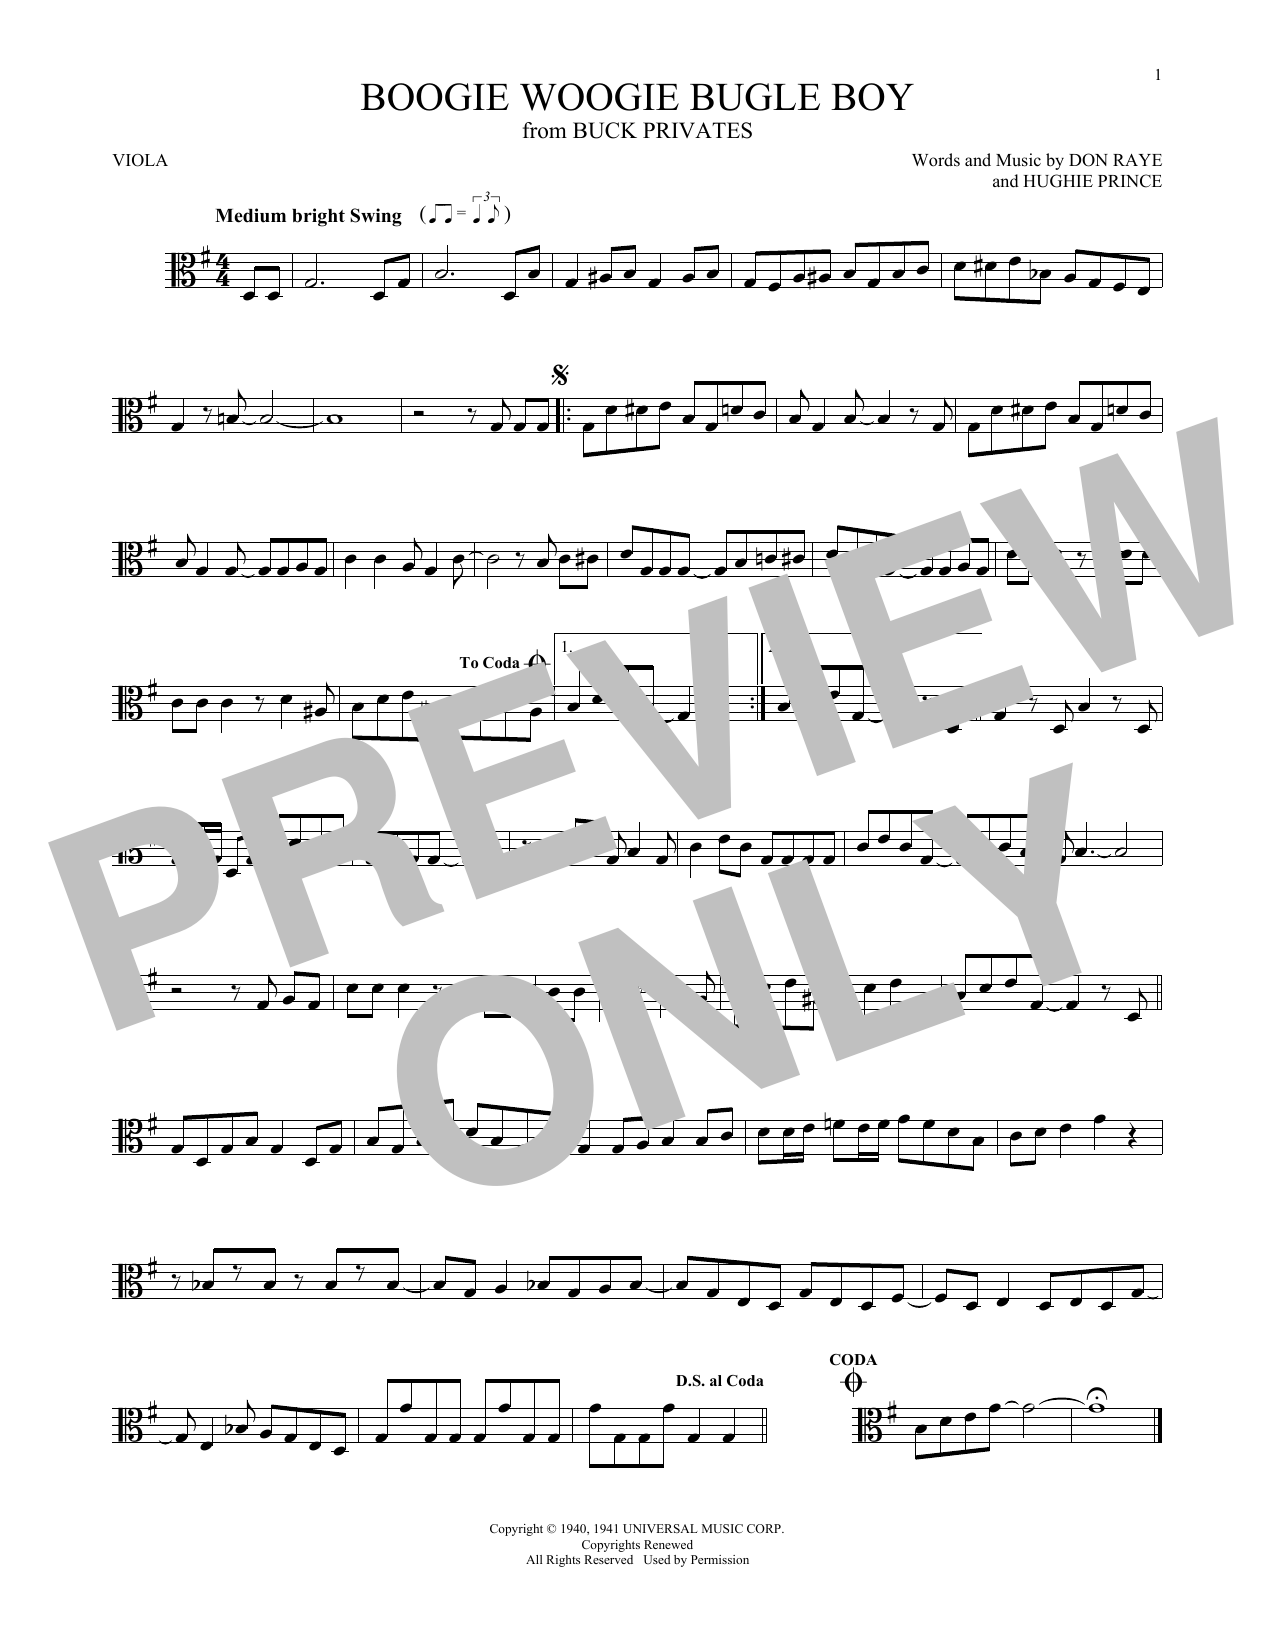 Boogie Woogie Bugle Boy Sheet Music